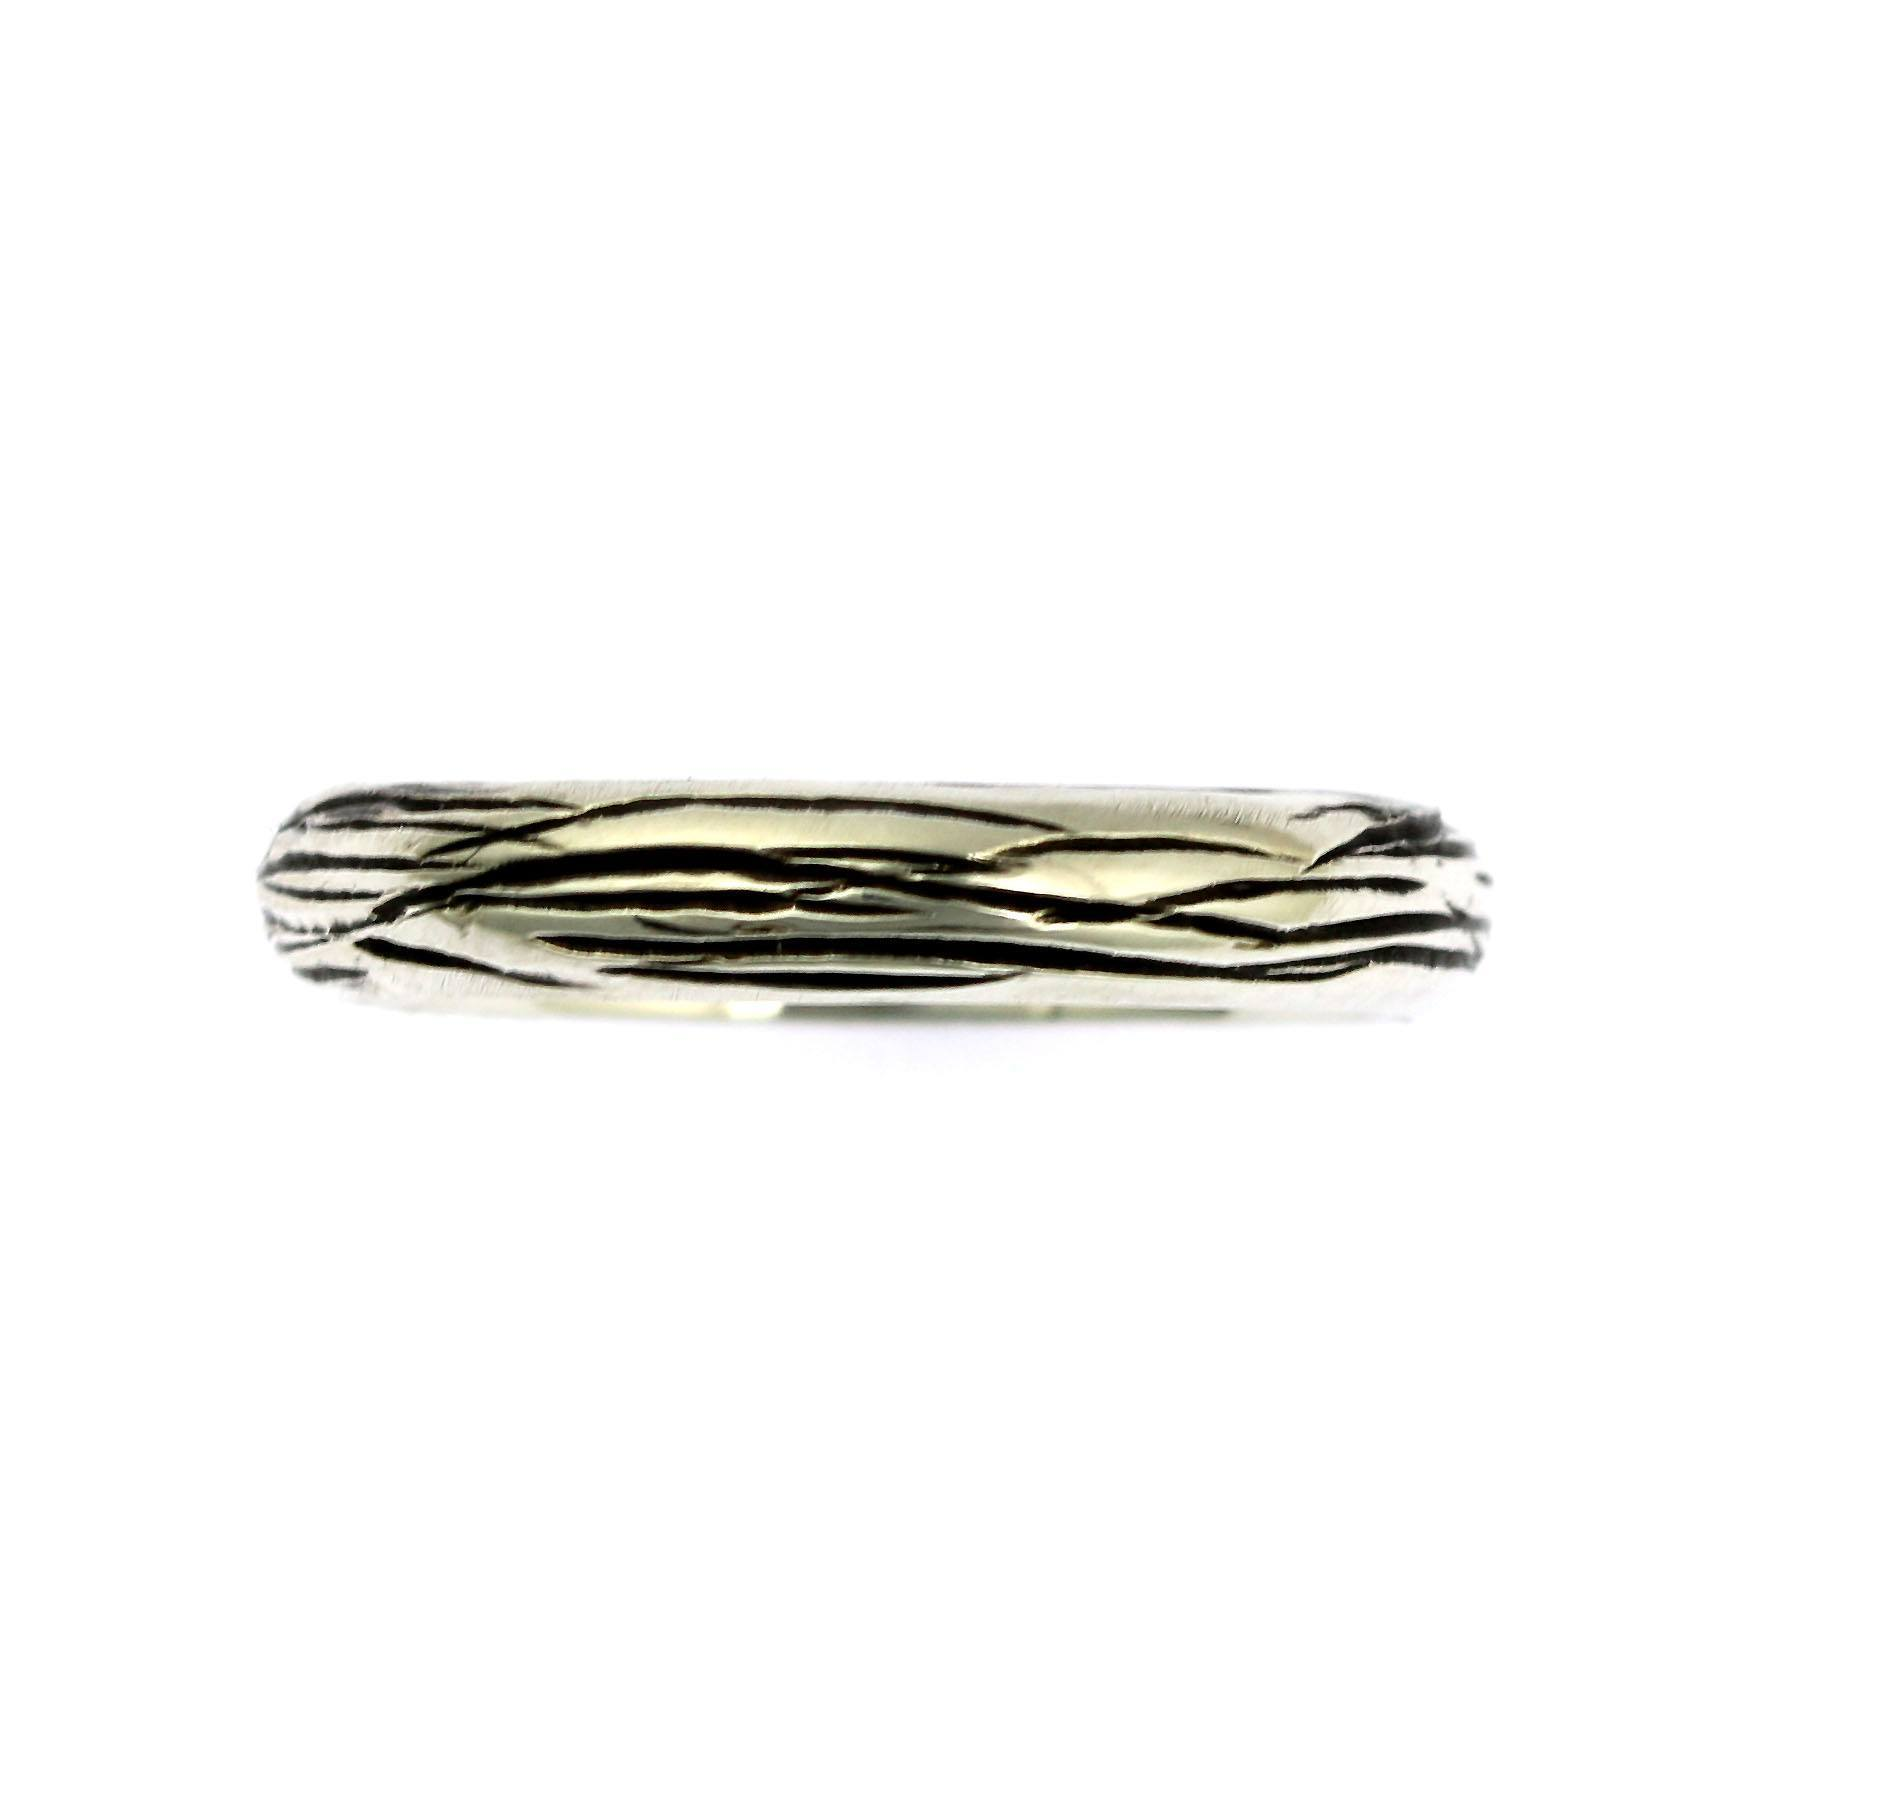 band ring silver co products oliver row sterling type in vendor open size rings tiffany jewellery cf